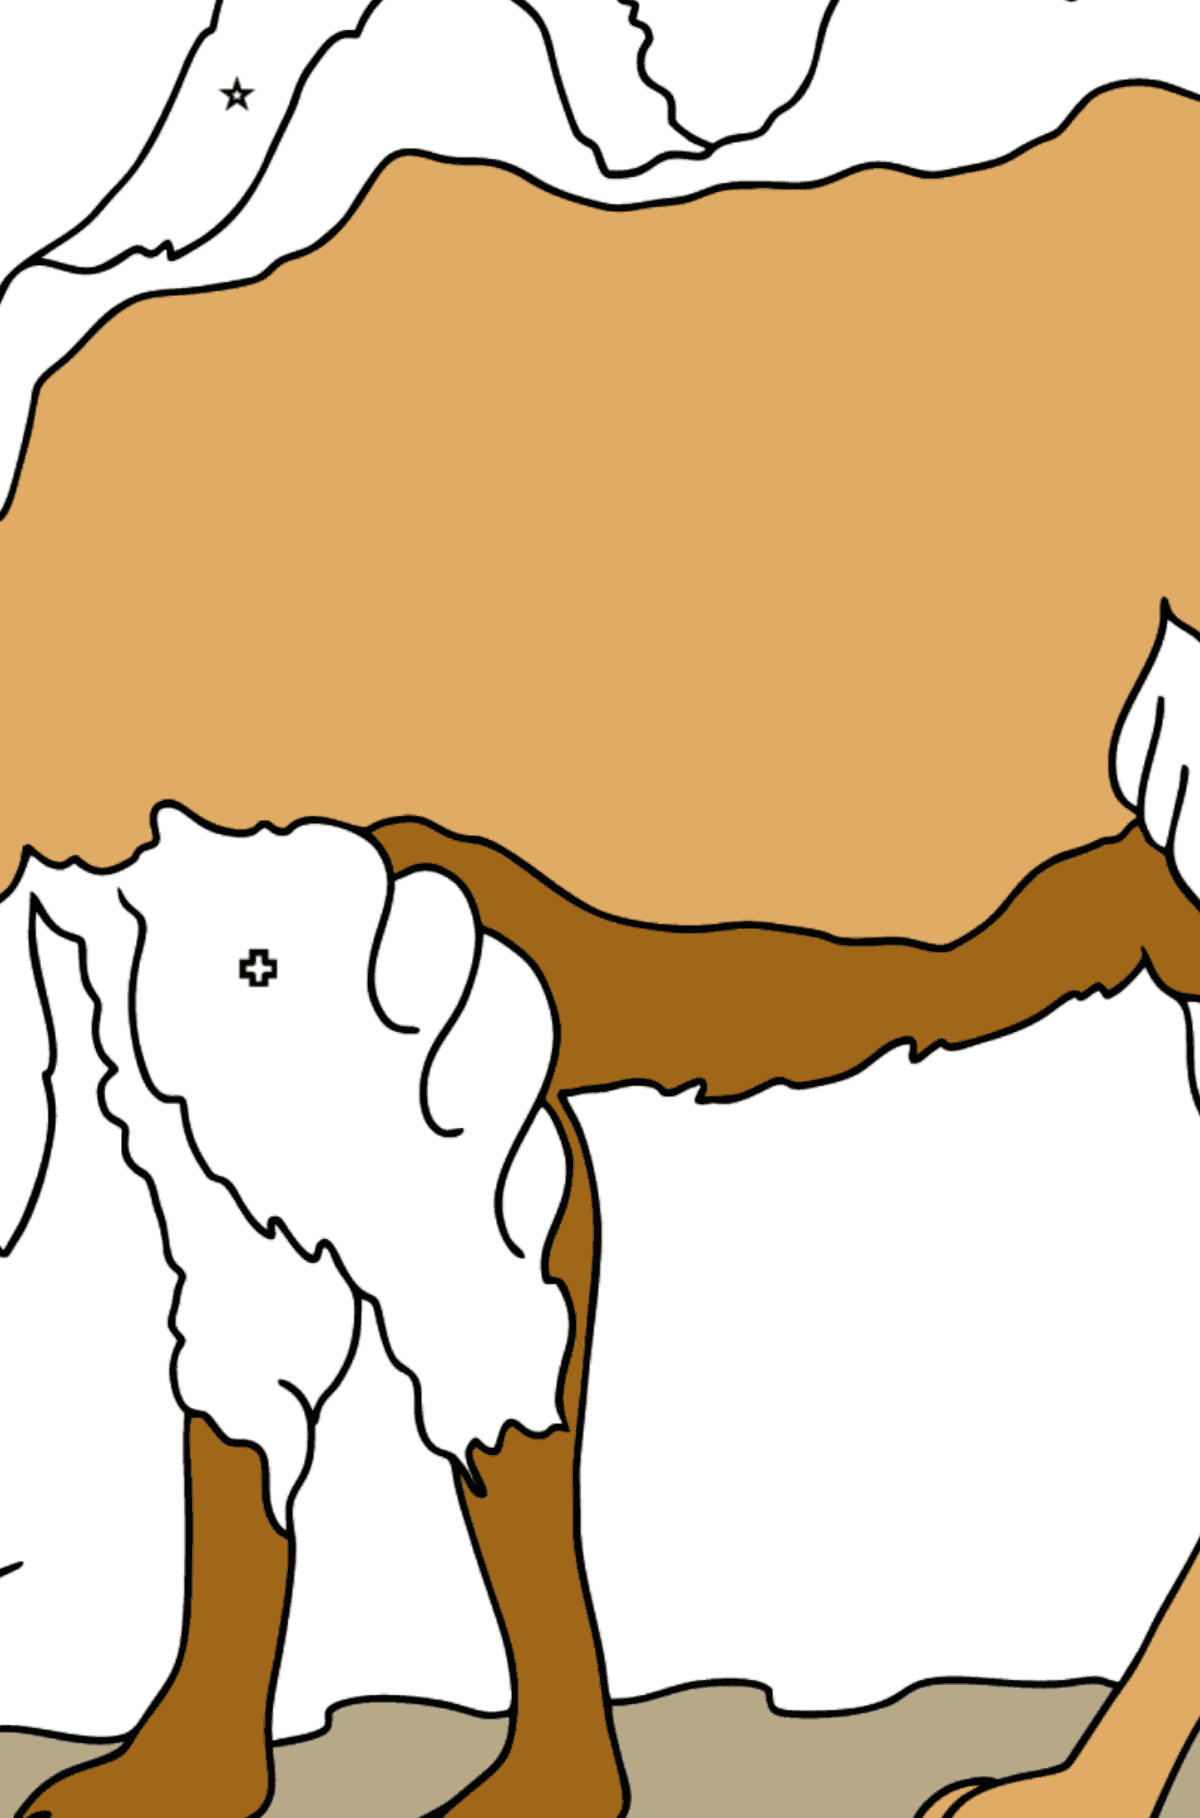 Coloring Page - A Camel in the Desert - Coloring by Geometric Shapes for Kids